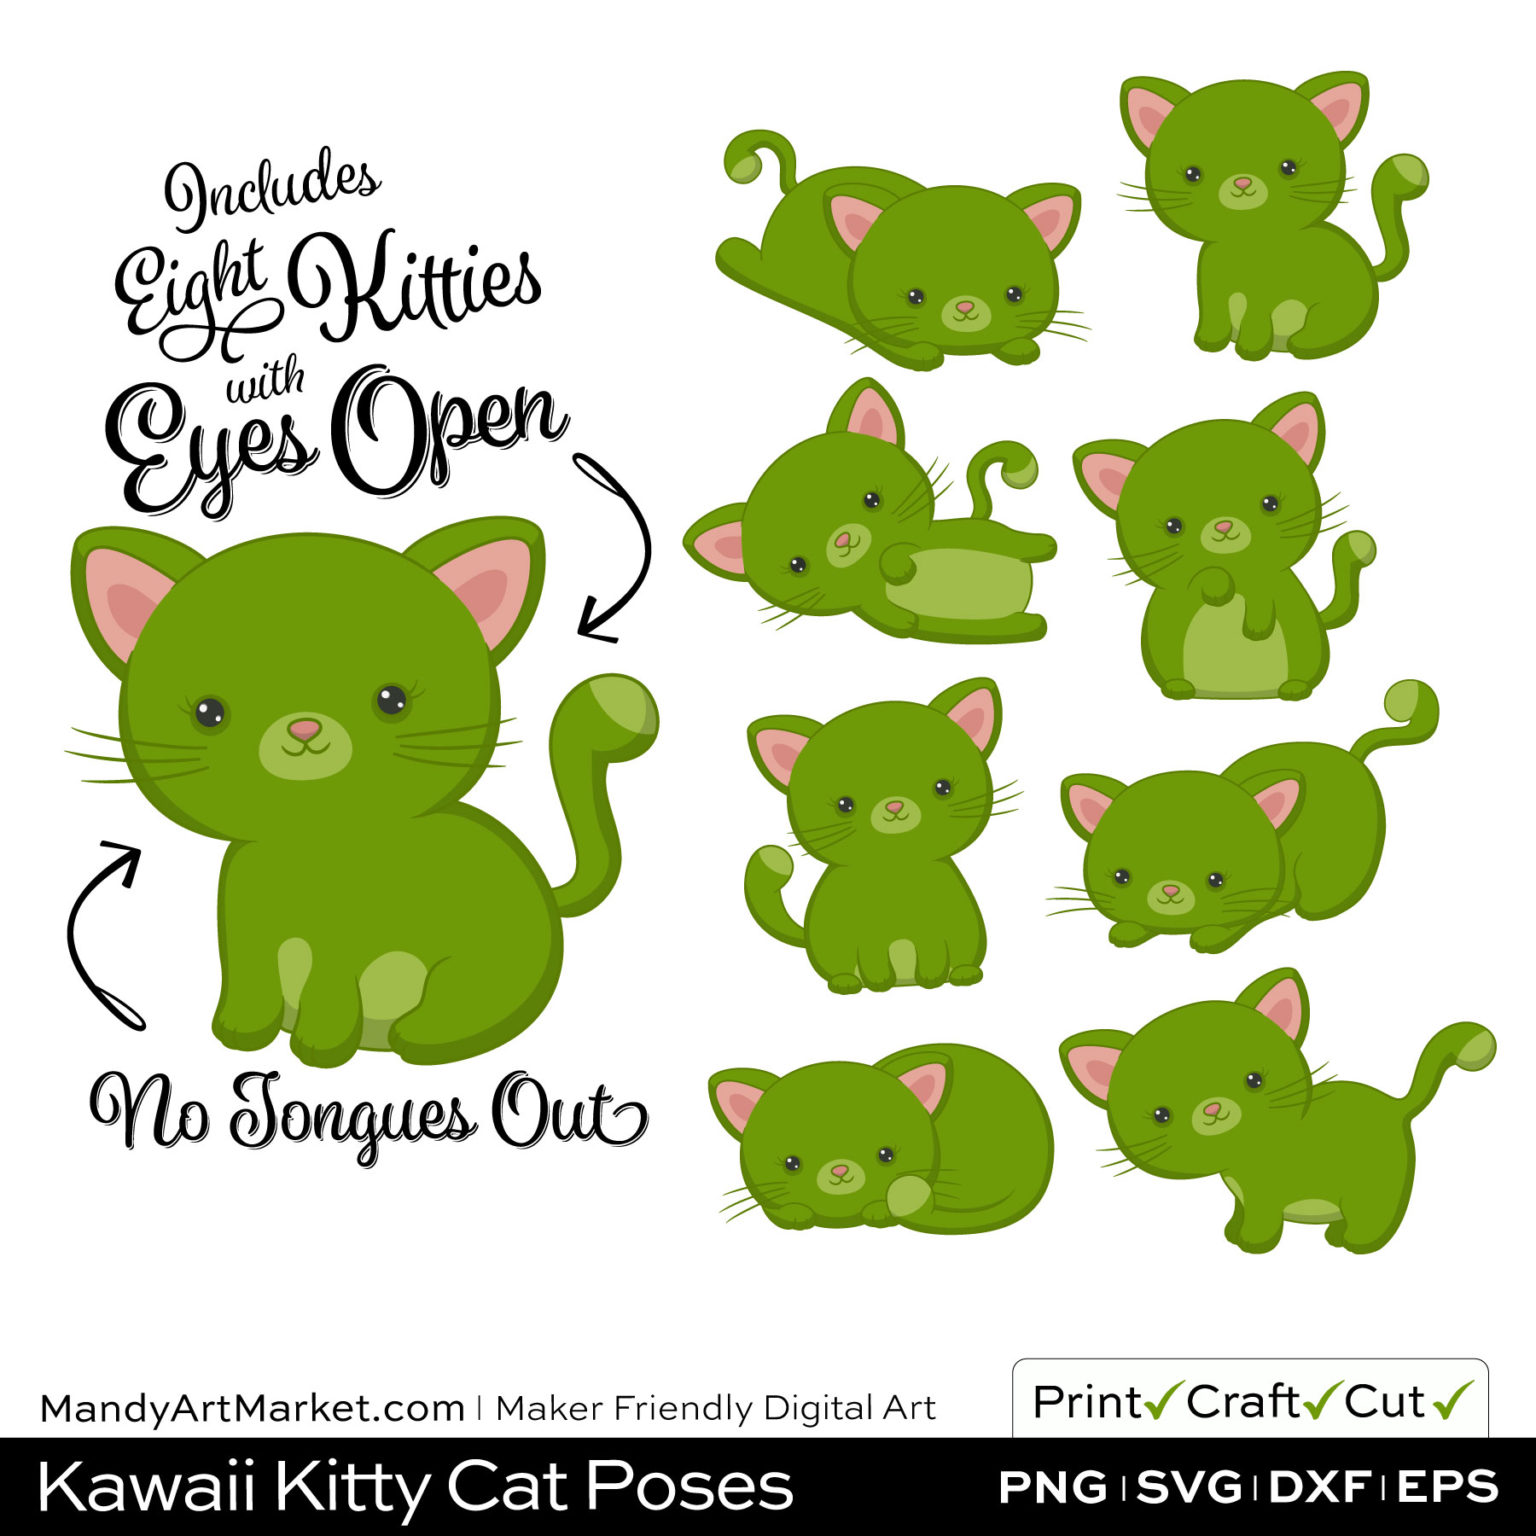 Bamboo Green Kawaii Kitty Cat Poses Clipart on Wood Background